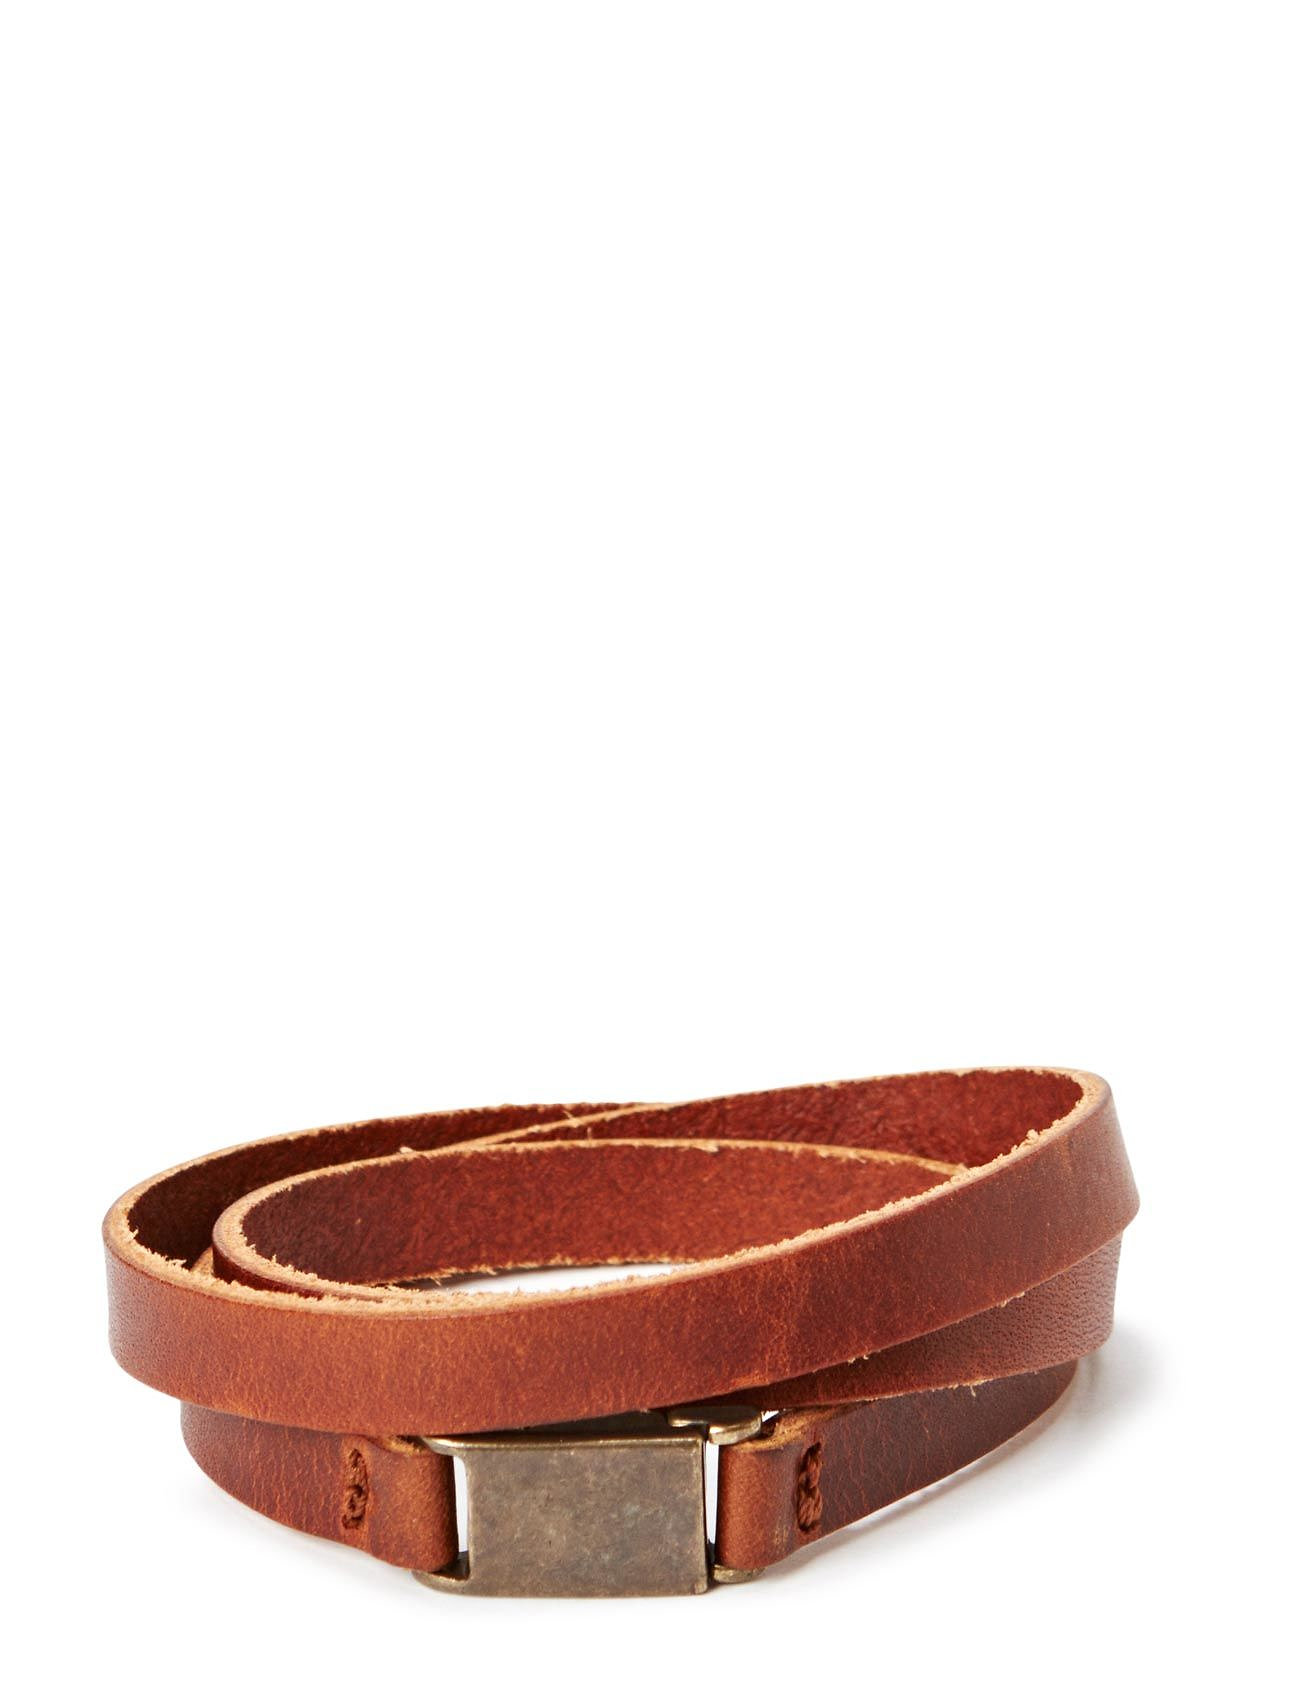 Royal RepubliQ Clip bracelet/cuff - COGNAC